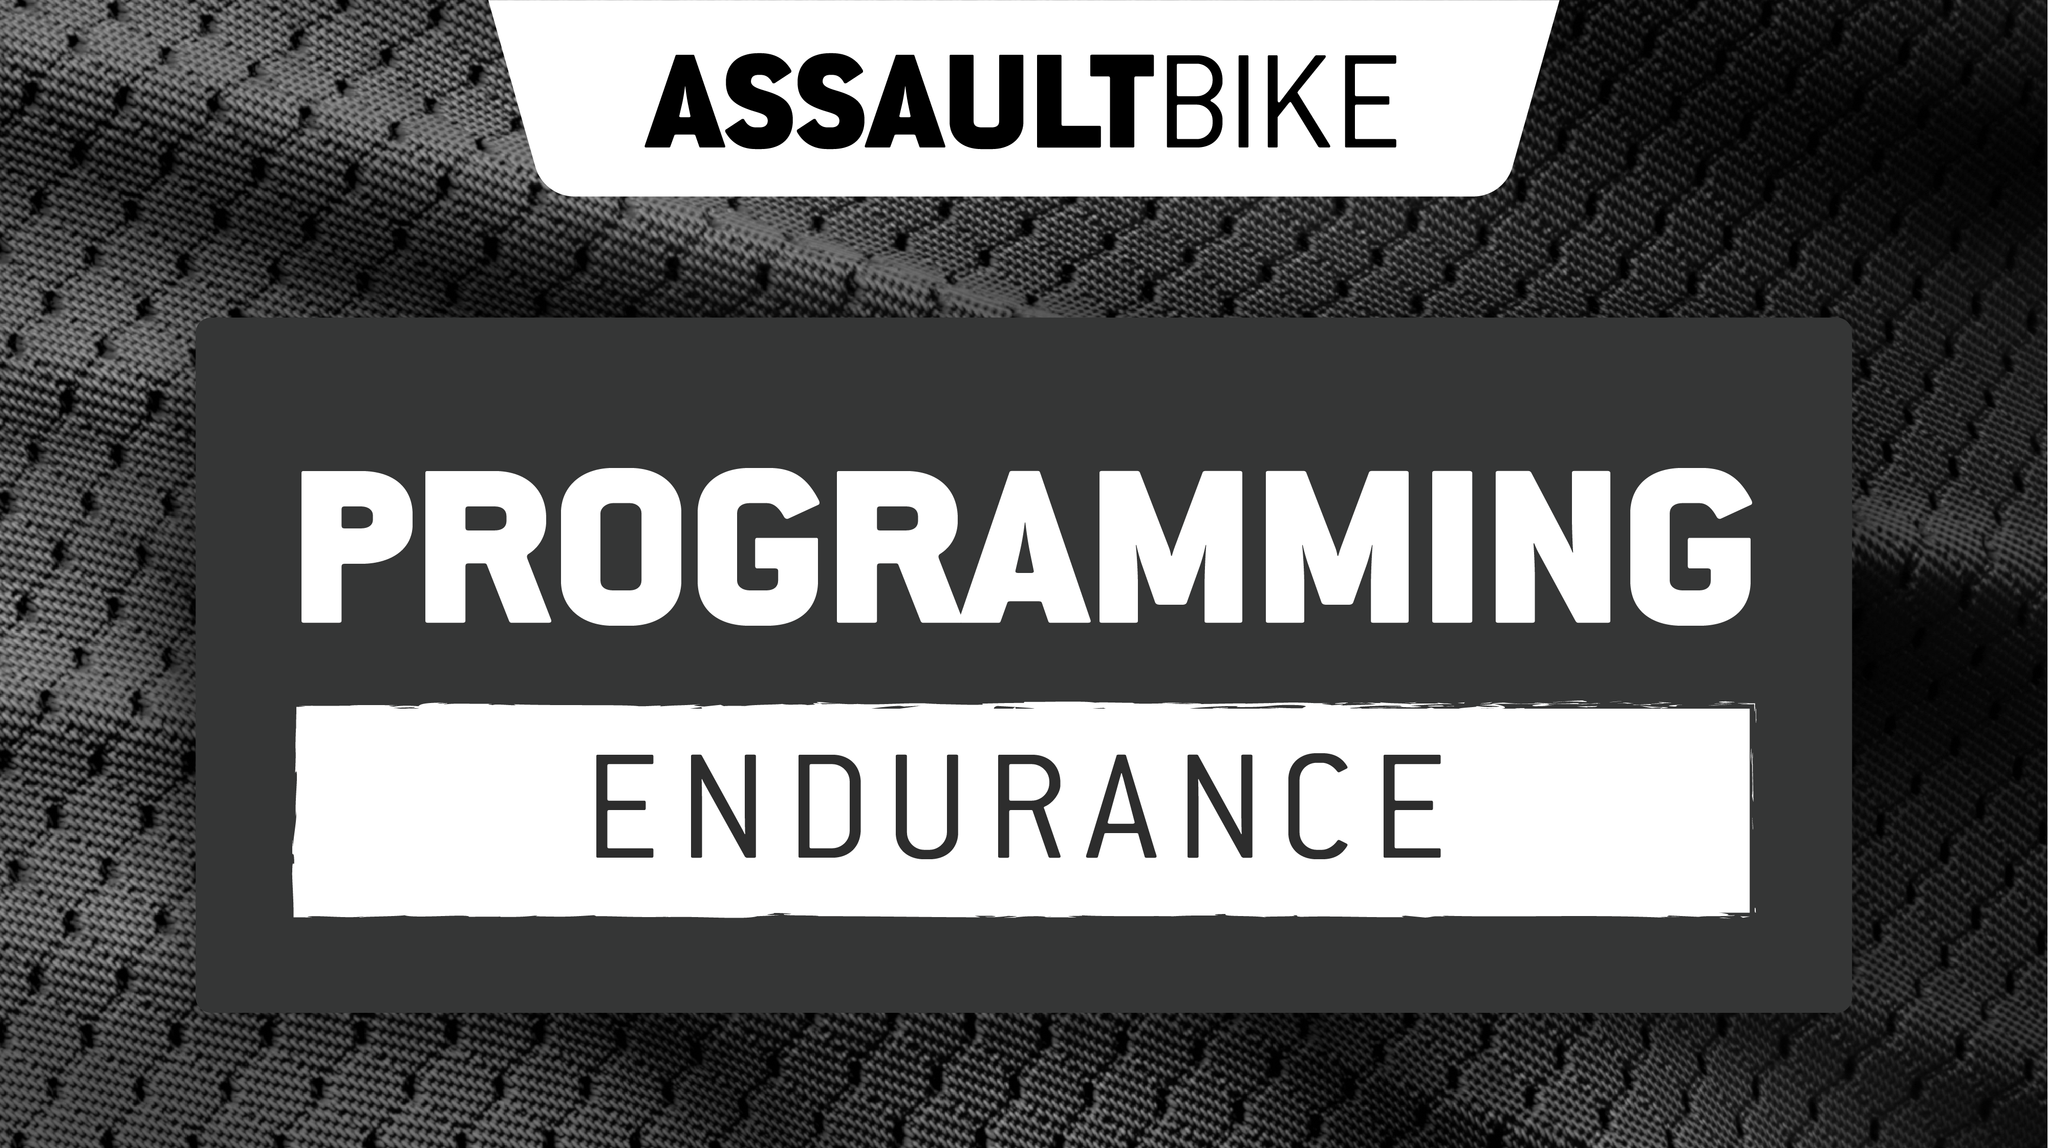 AssaultWOD: AssaultBike Endurance